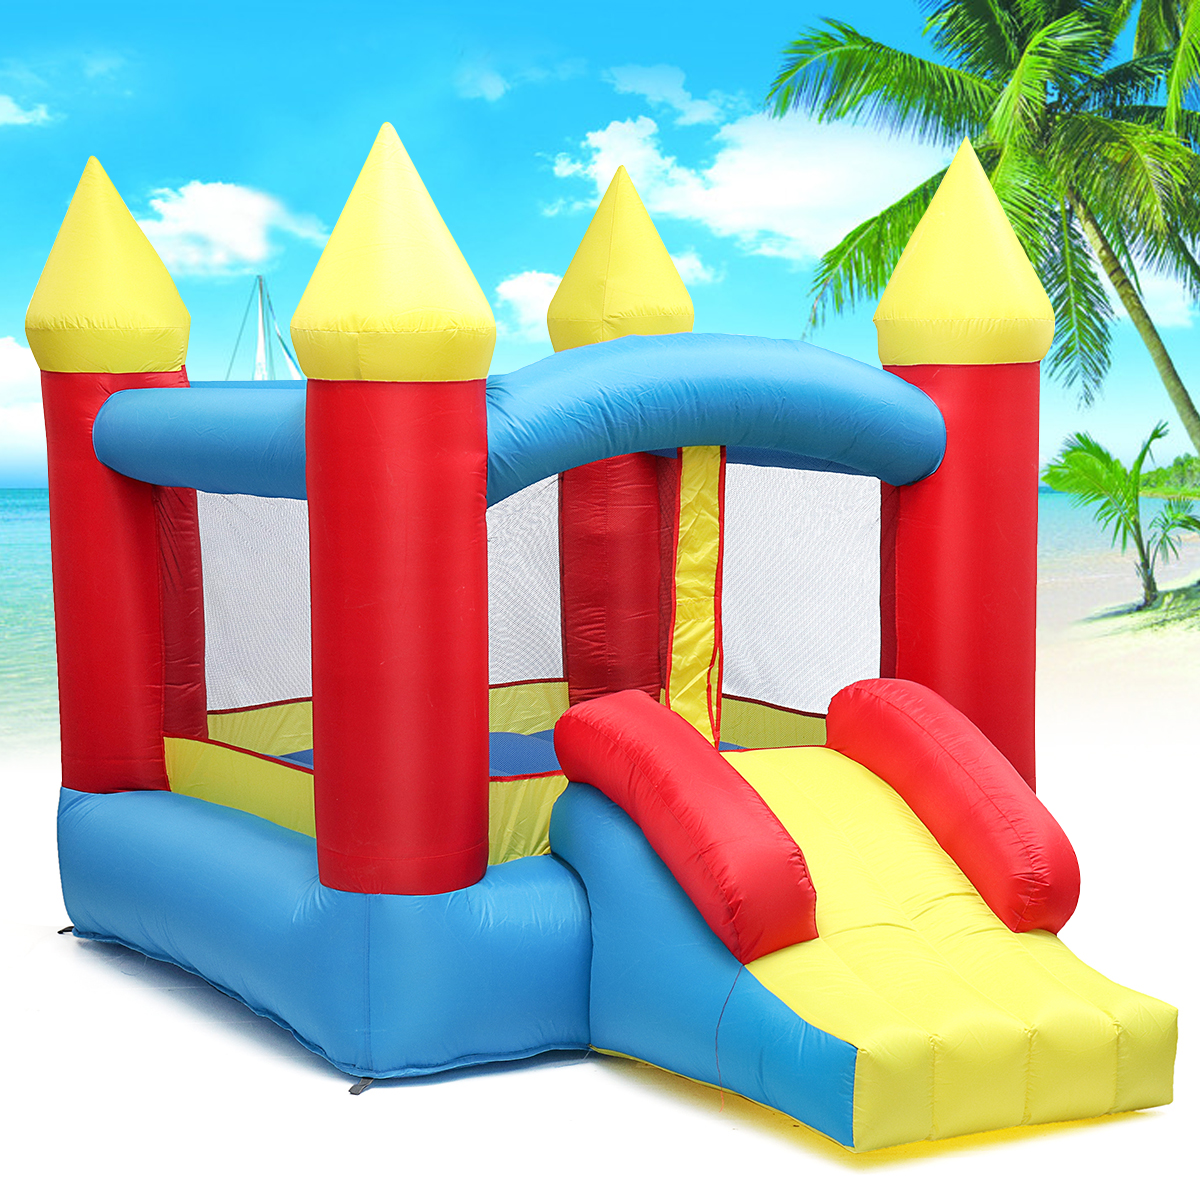 1Set Bouncy Castle Outdoor Indoor Universal Trampoline Inflatable Castle Playing Games for Kids Gift aladdin castle style inflatable trampoline for kids playing and praying